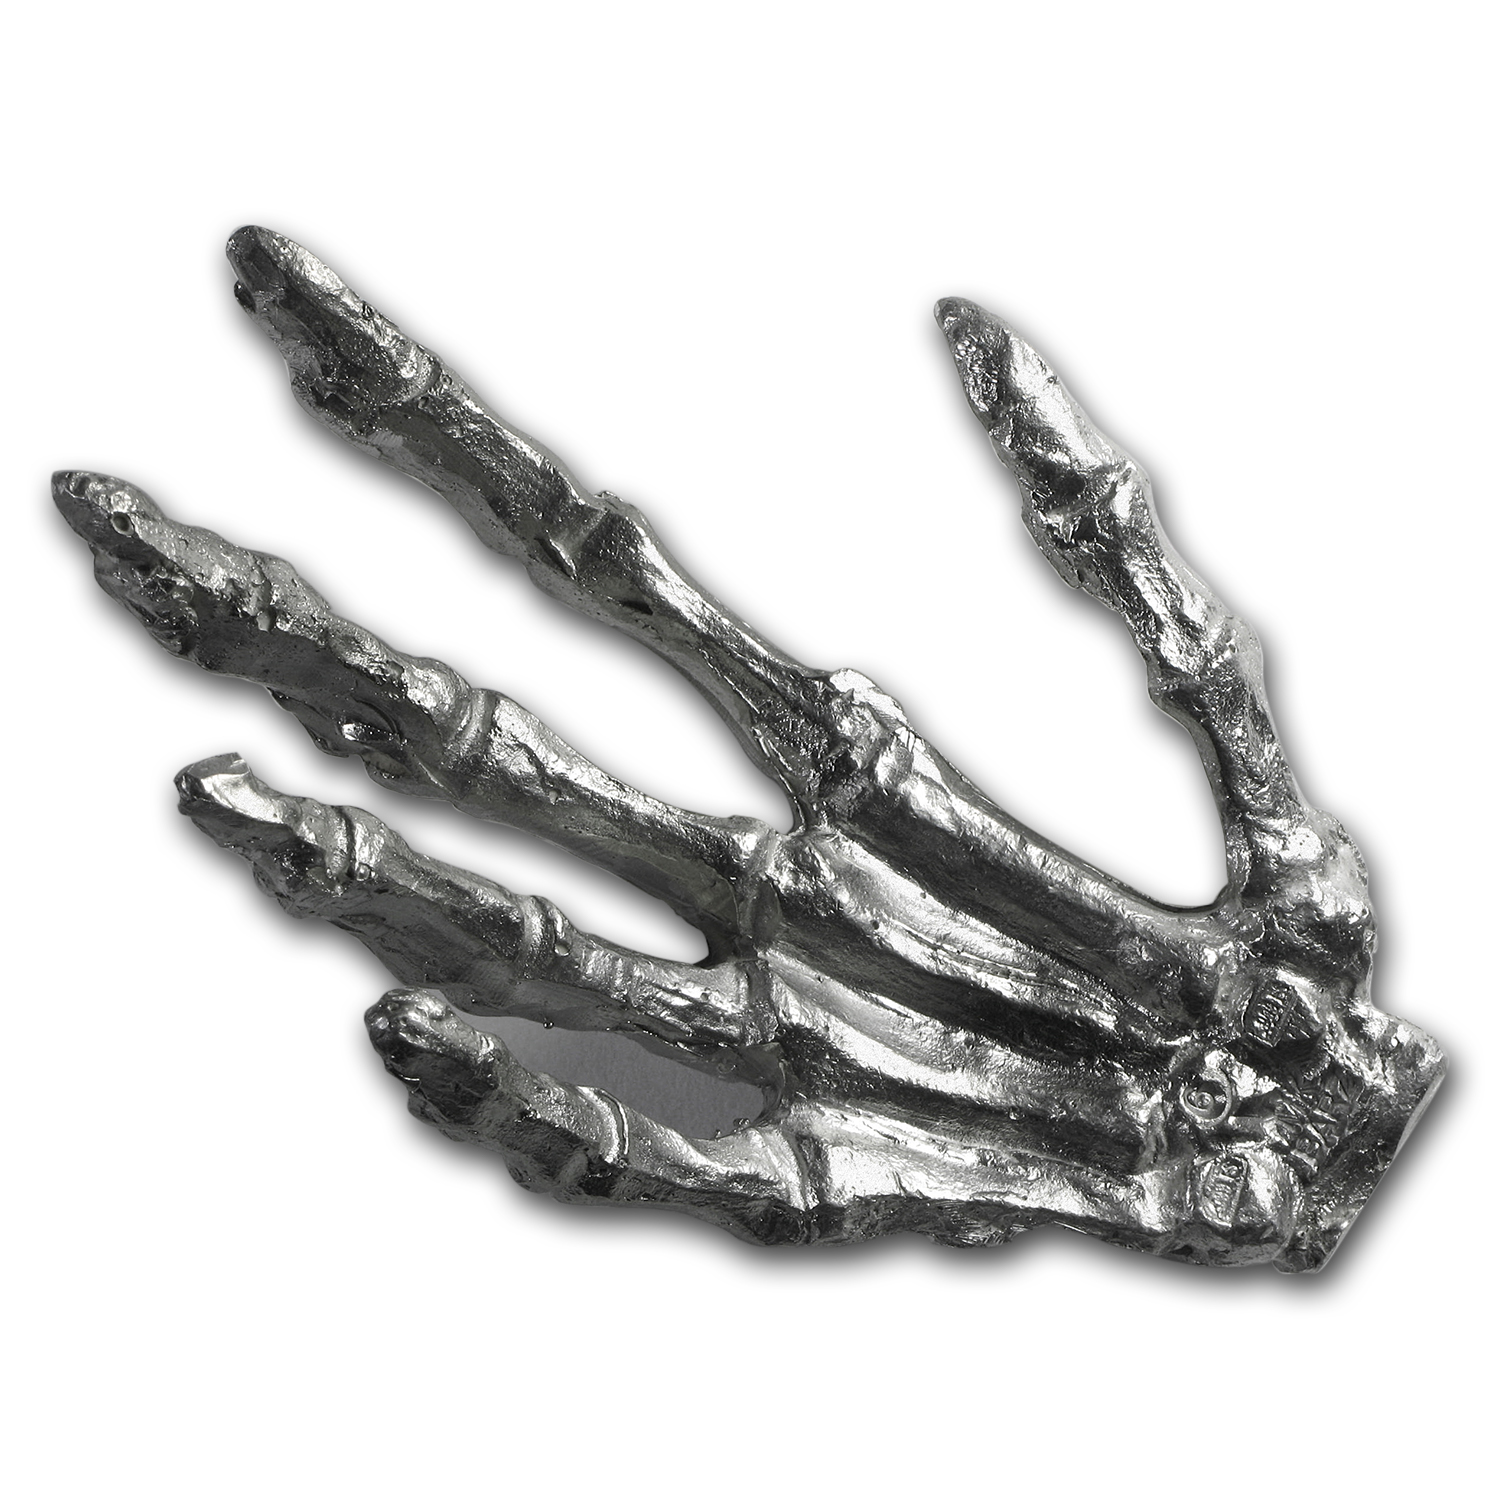 6 oz Silver - MK Barz & Bullion (Skeleton Hand)